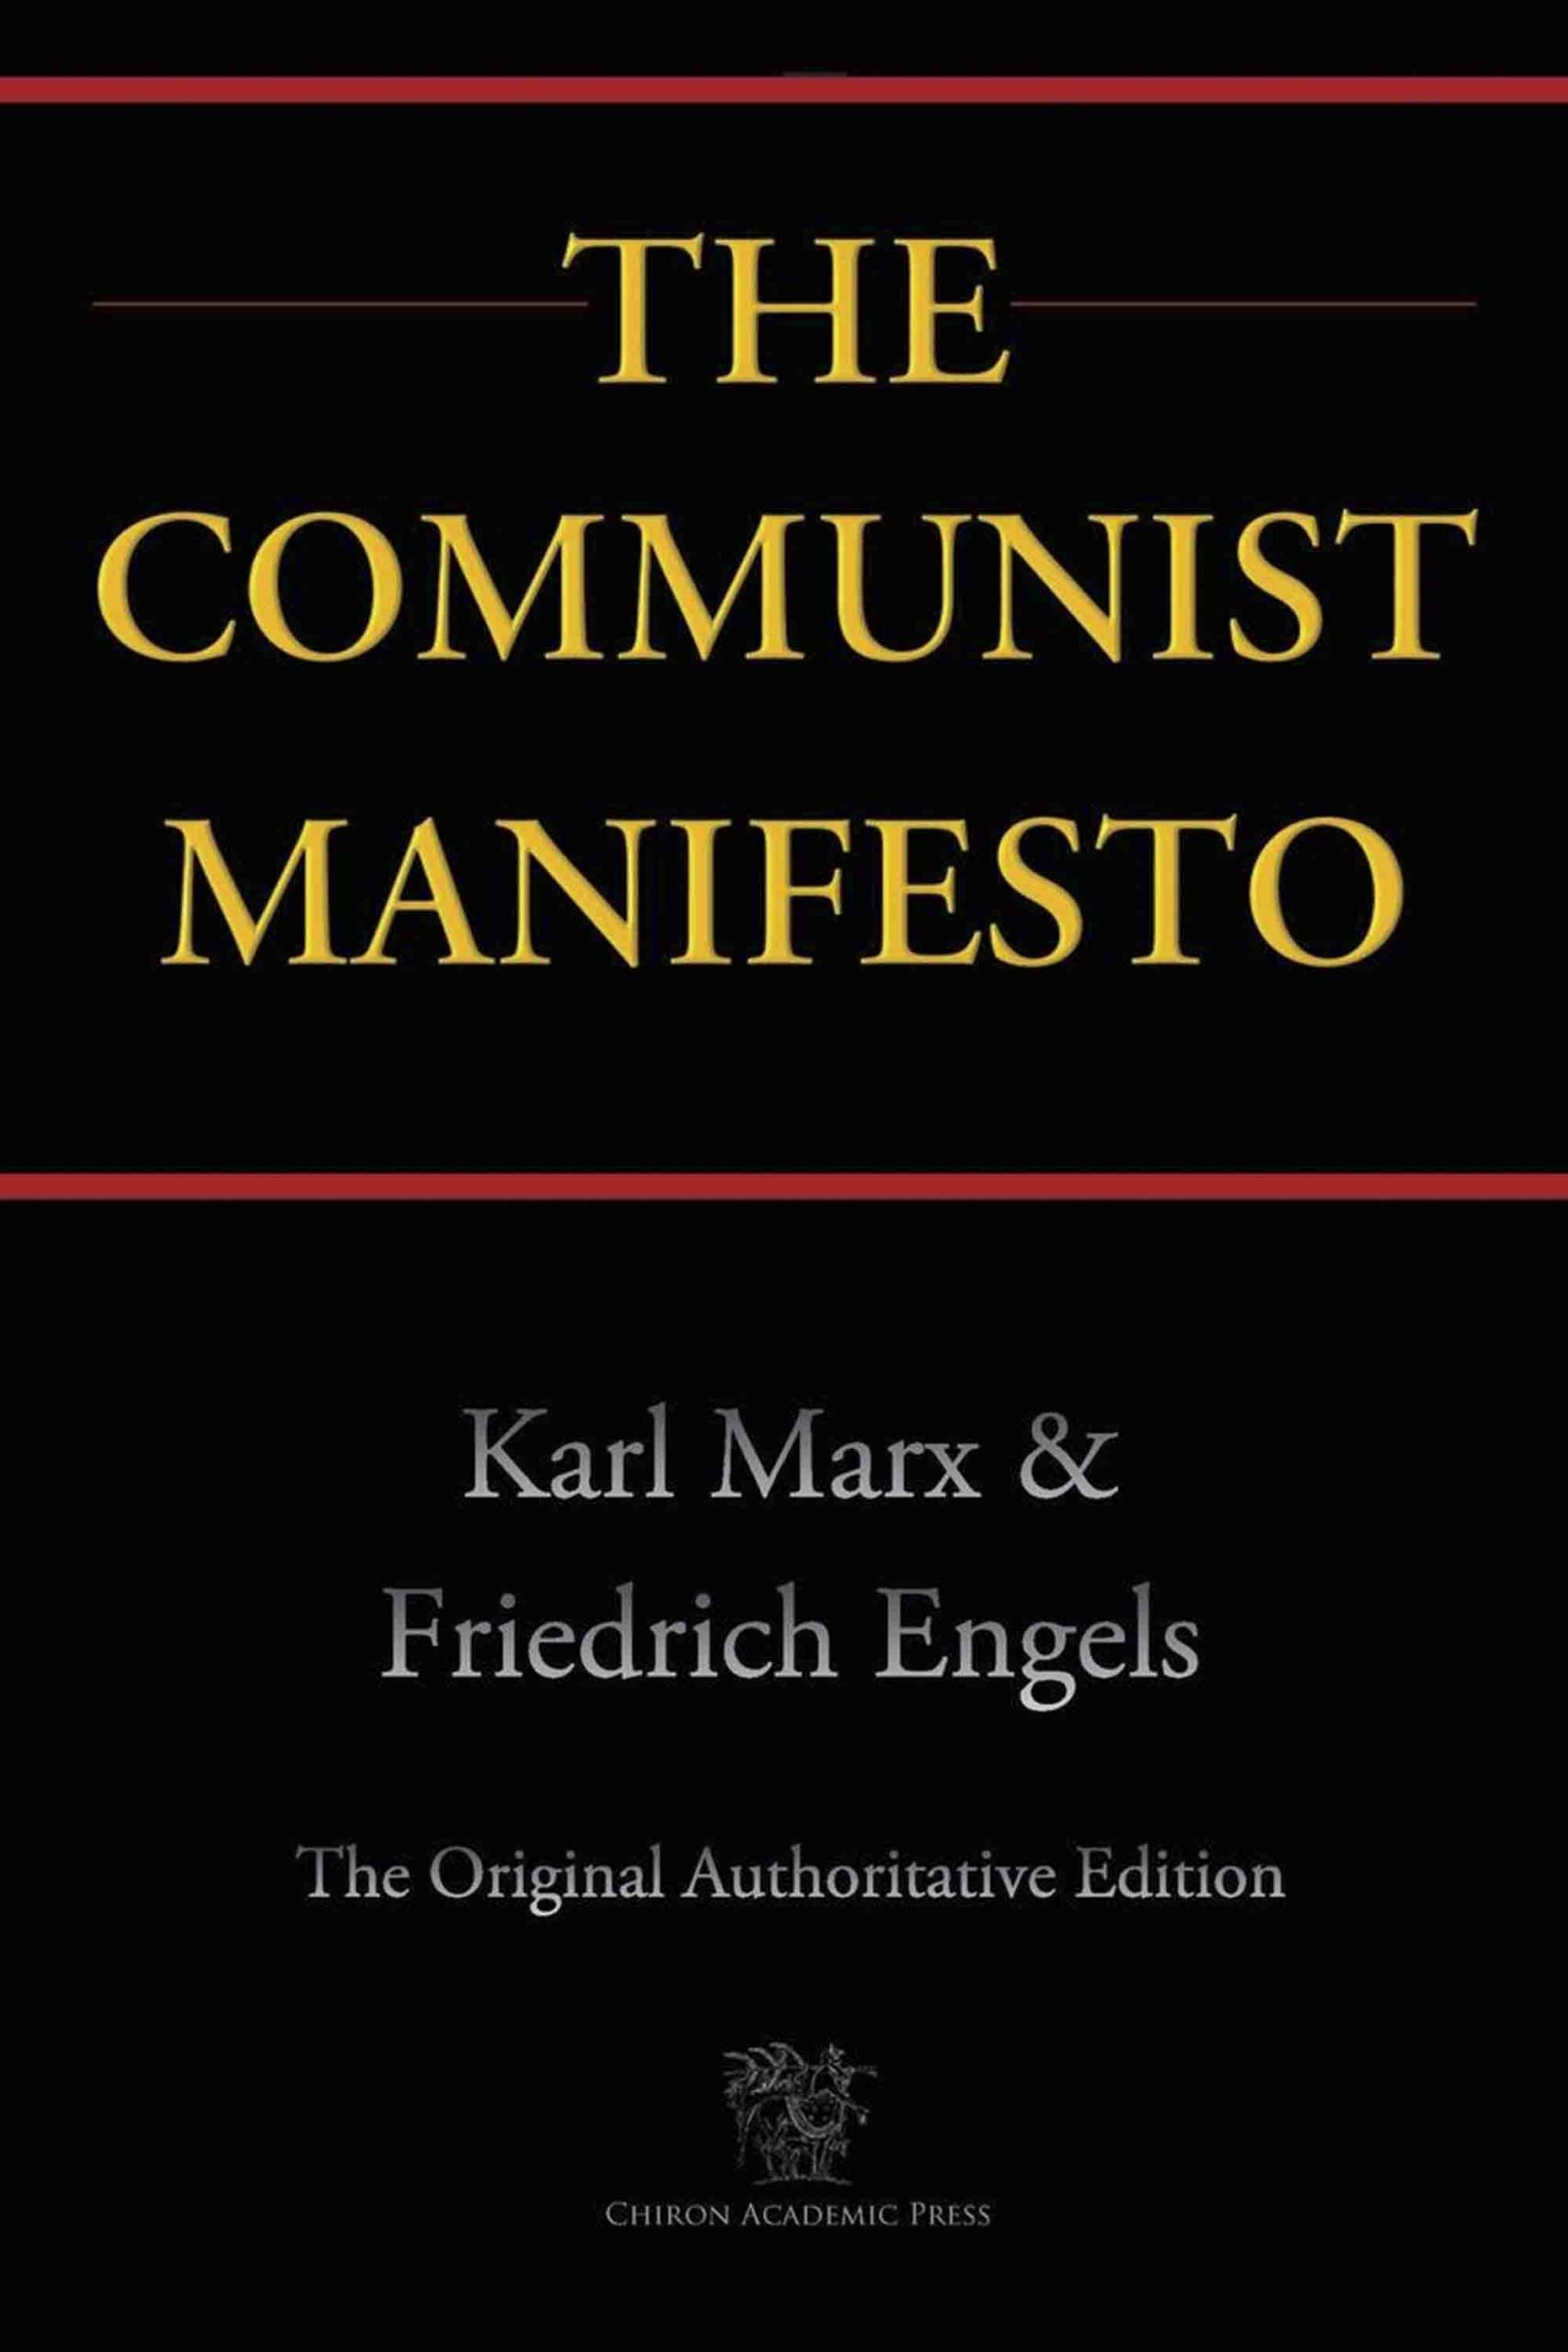 The Communist Manifesto (Chiron Academic Press – The Original Authoritative Edition)